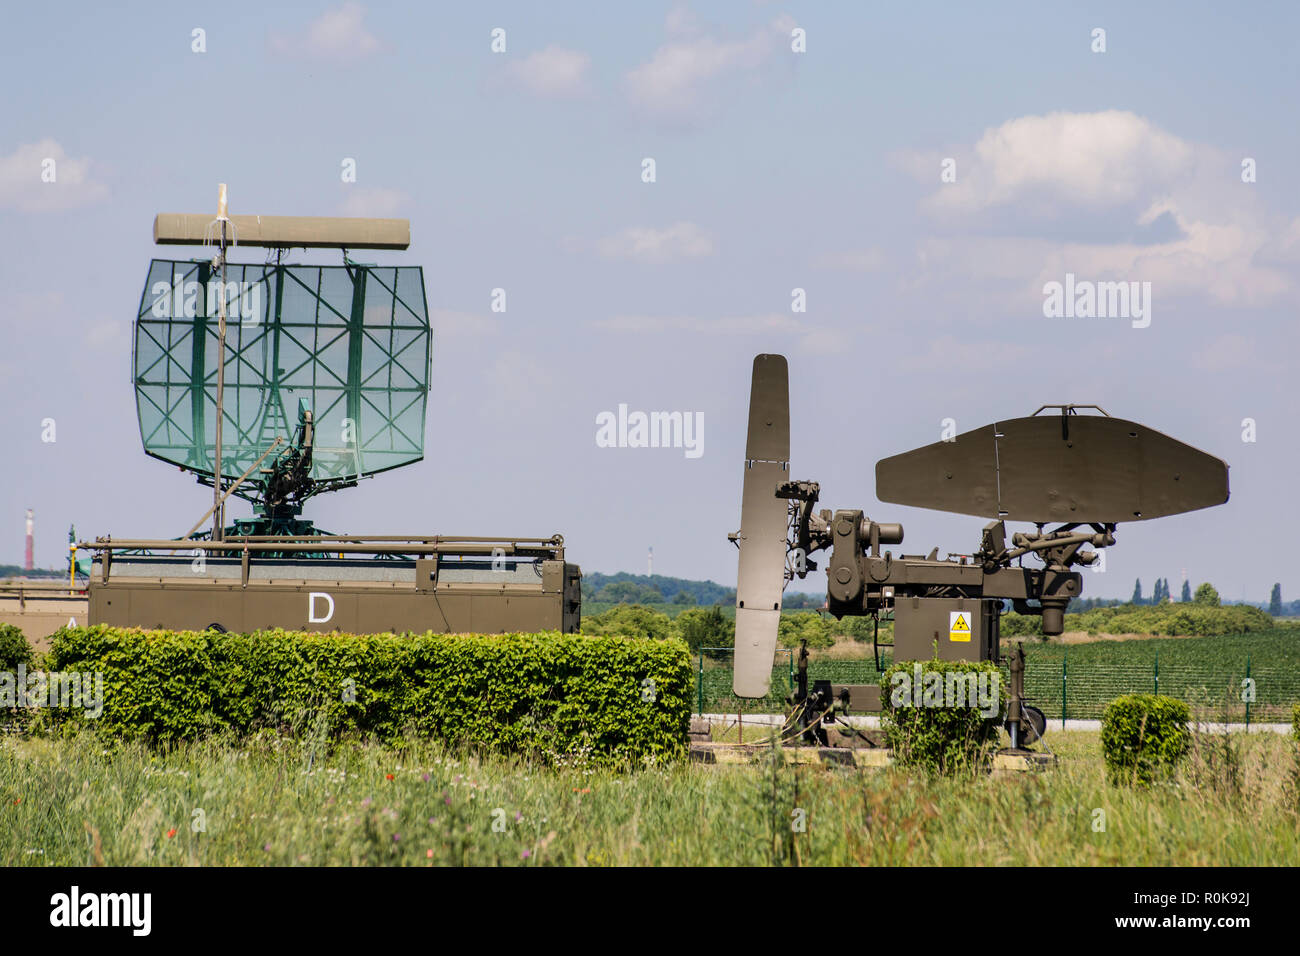 Approach radar and ILS at Czech Air base. - Stock Image